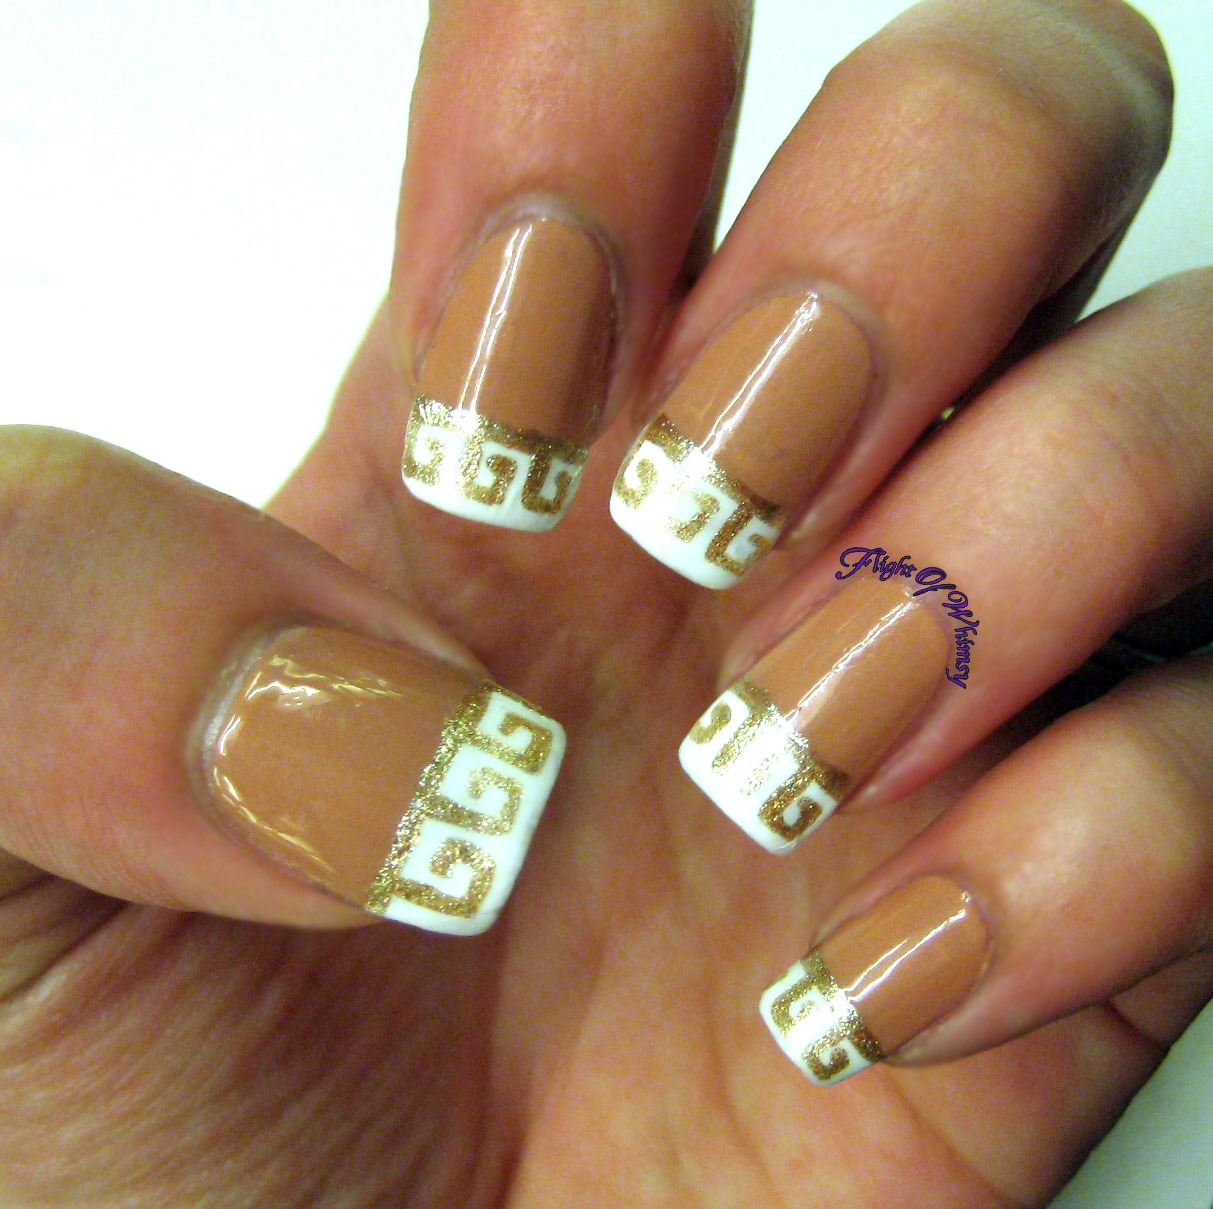 Wild French Tip Nail Designs: Flight Of Whimsy